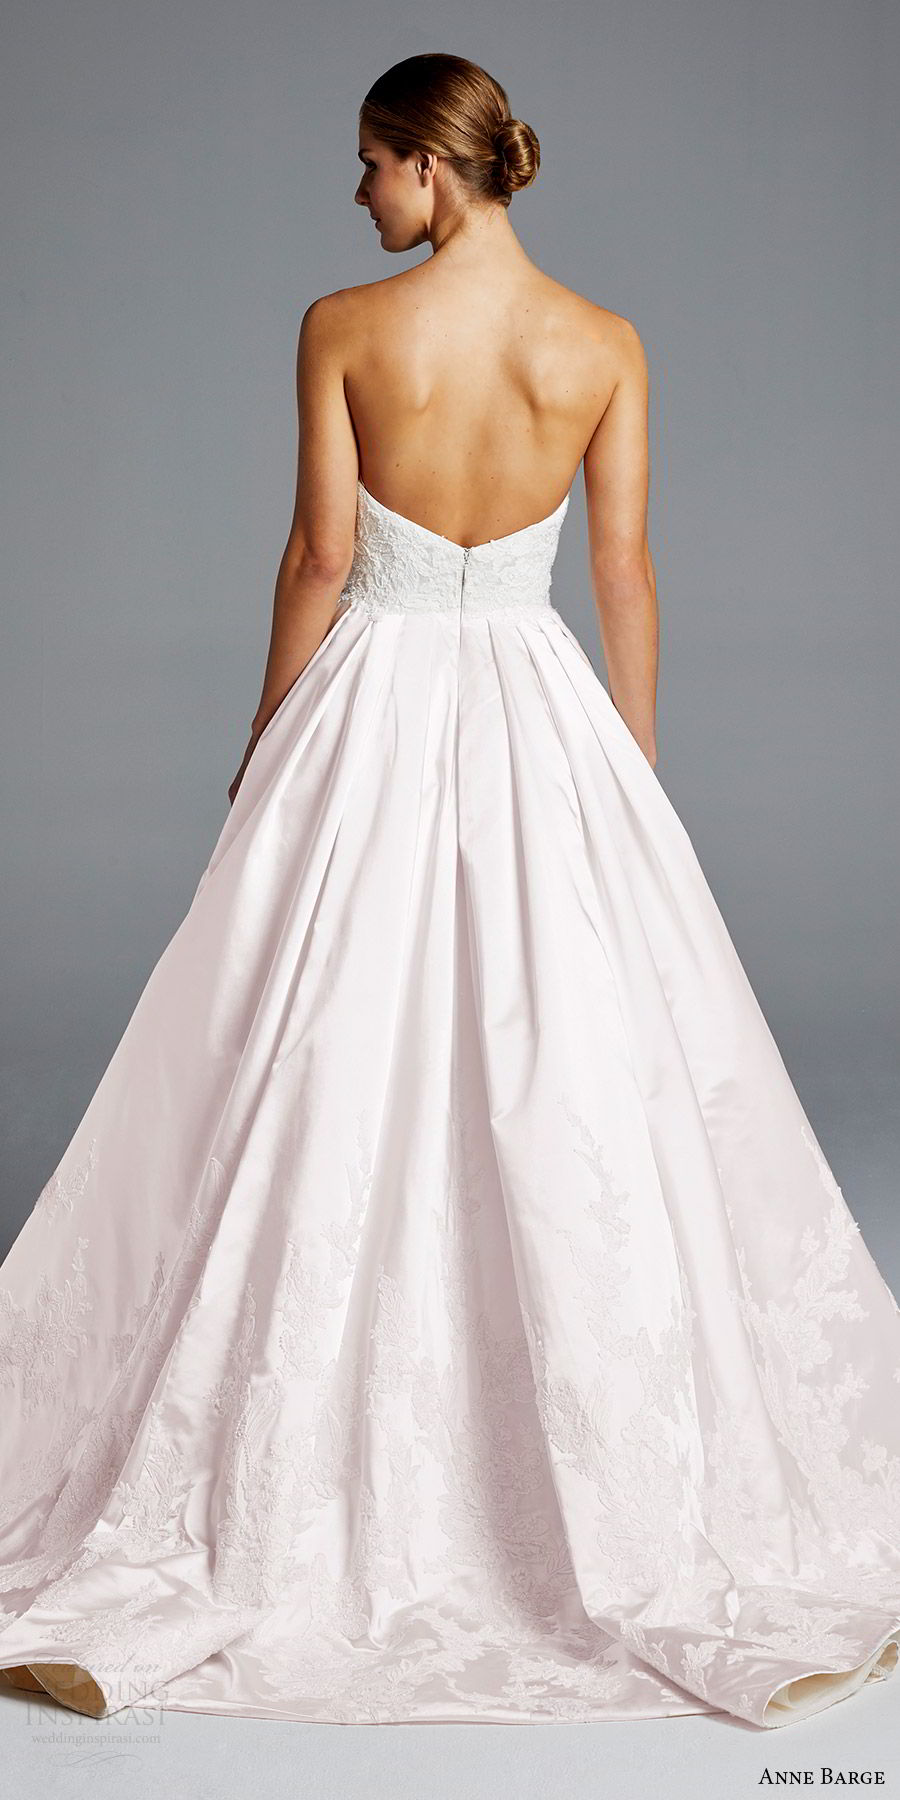 anne barge bridal spring 2019 strapless straigh across lace bodice a line wedding dress (michelle) bv low back chapel train blush color princess romantic